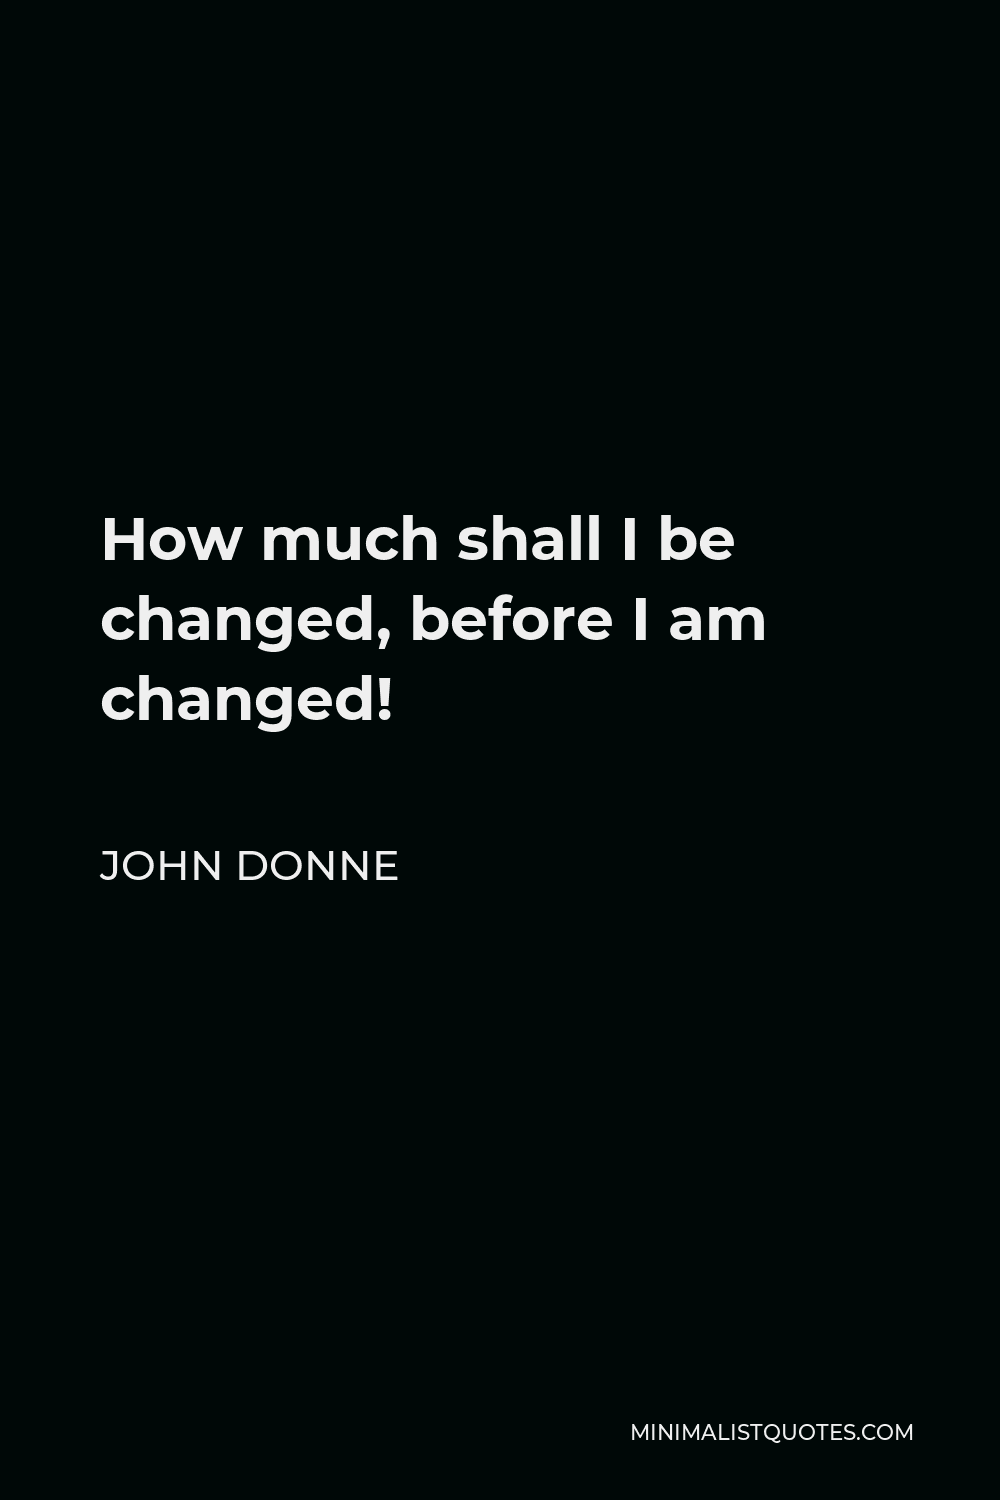 John Donne Quote - How much shall I be changed, before I am changed!